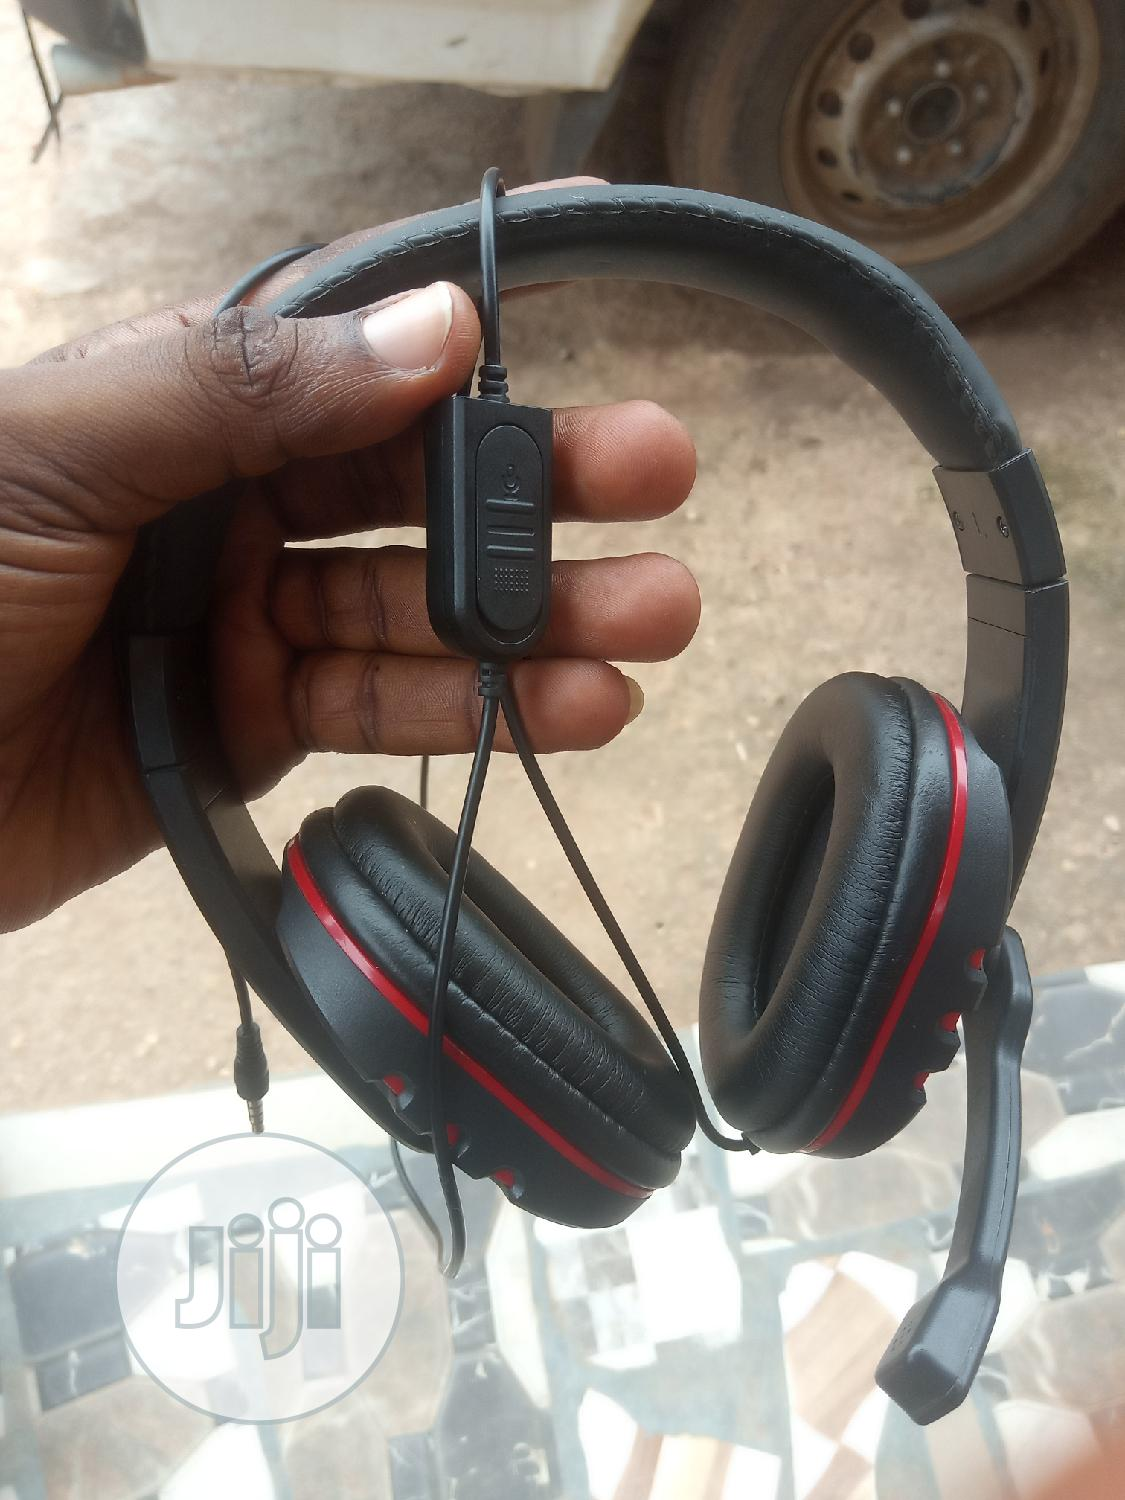 Smart Gaming/Music Headset For Phones/Playstation/Stereo | Headphones for sale in Umuahia, Abia State, Nigeria